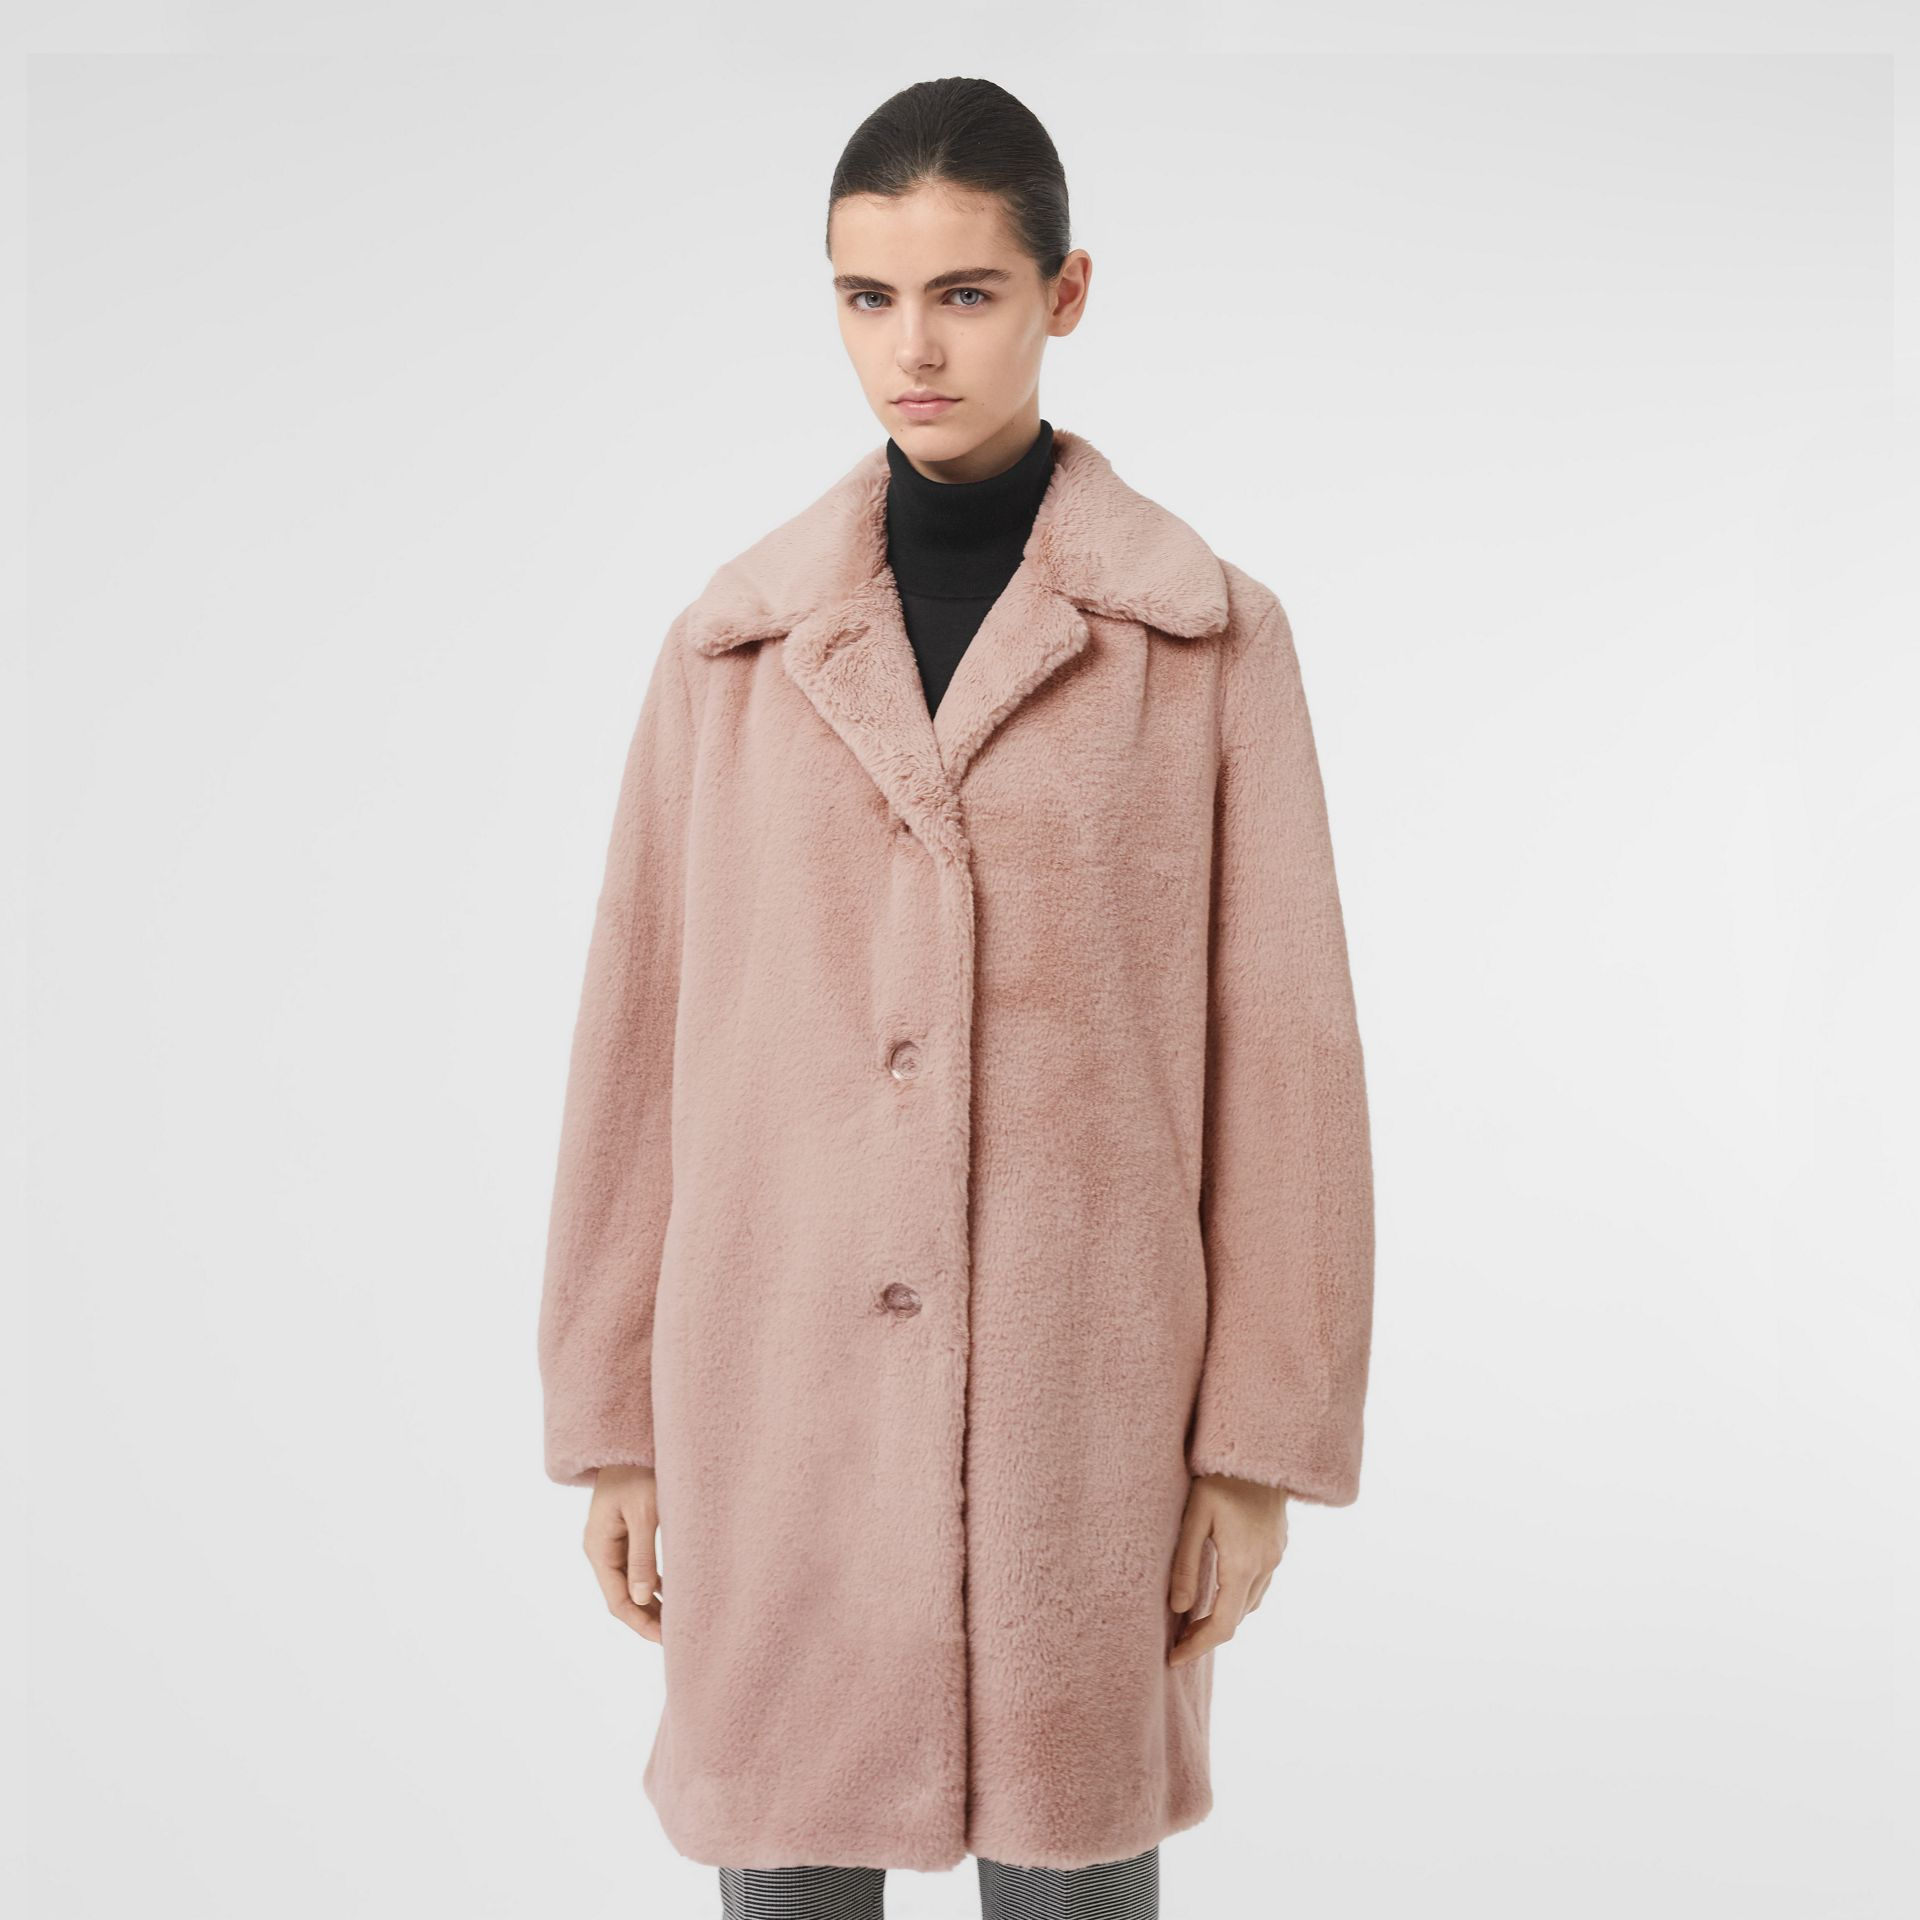 Faux Fur Single-breasted Coat in Pale Blush - Women | Burberry - gallery image 5